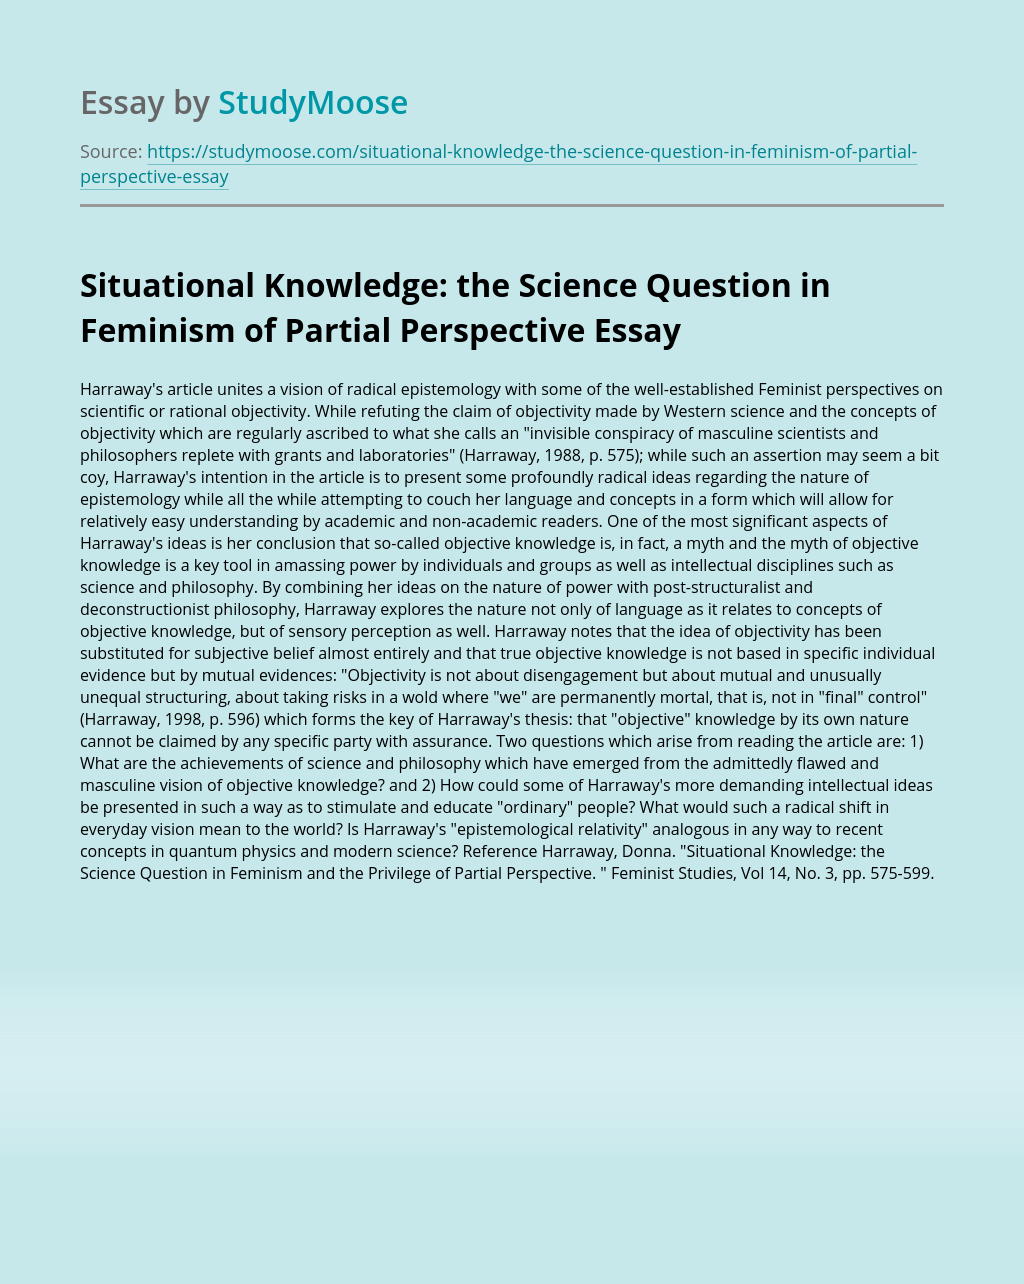 Situational Knowledge: the Science Question in Feminism  of Partial Perspective